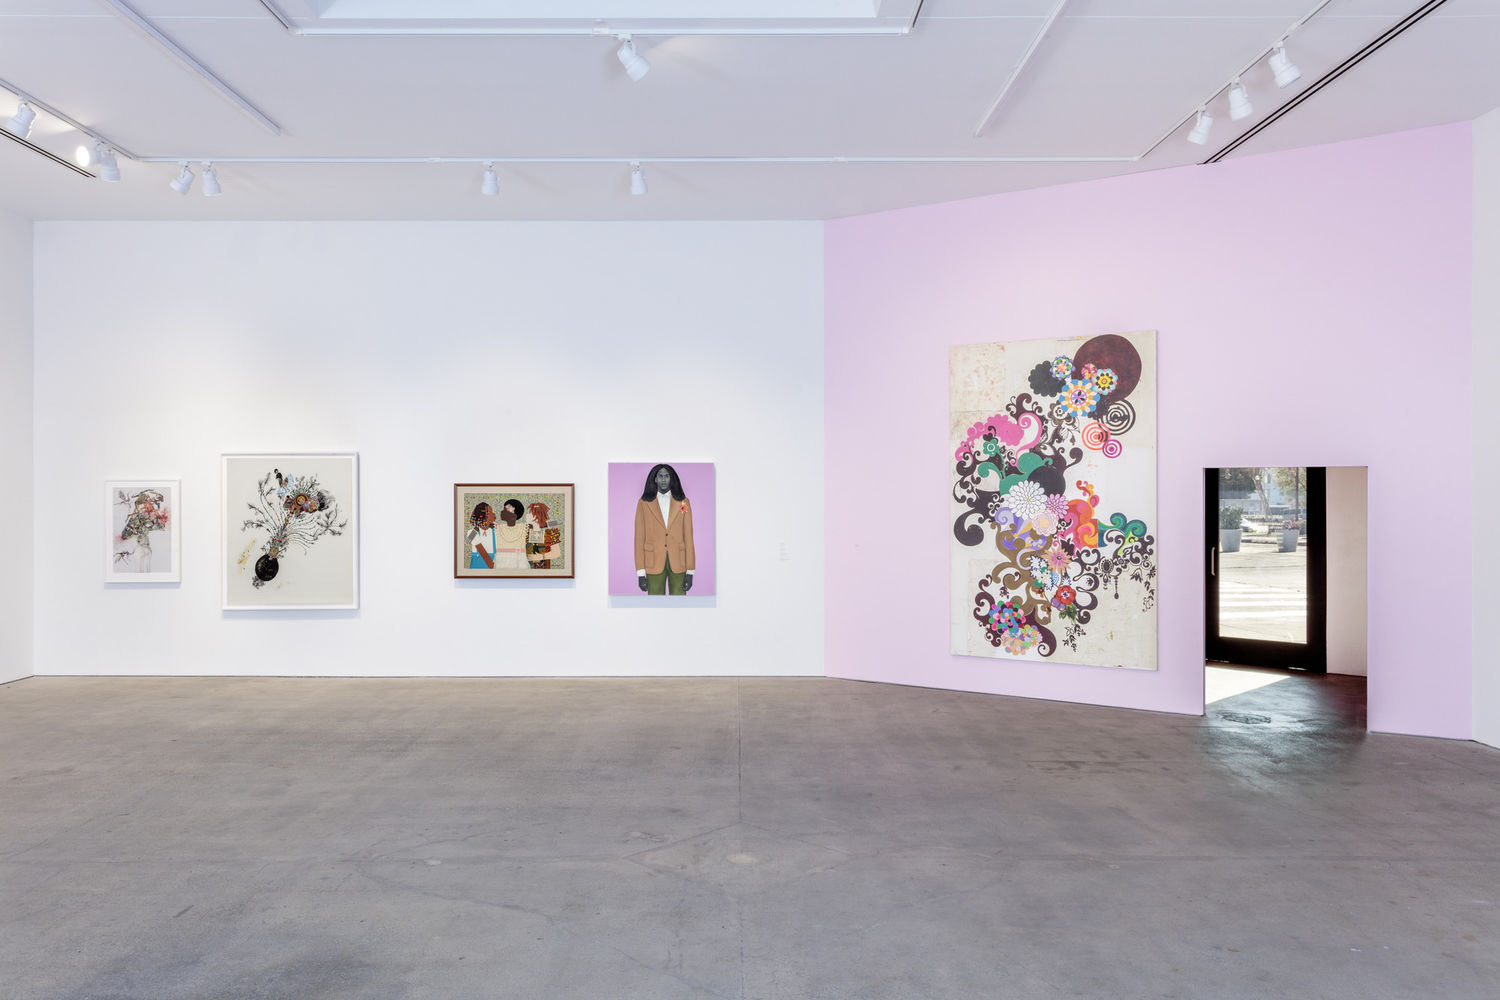 A gallery with a white and a pink wall with five artworks hanging